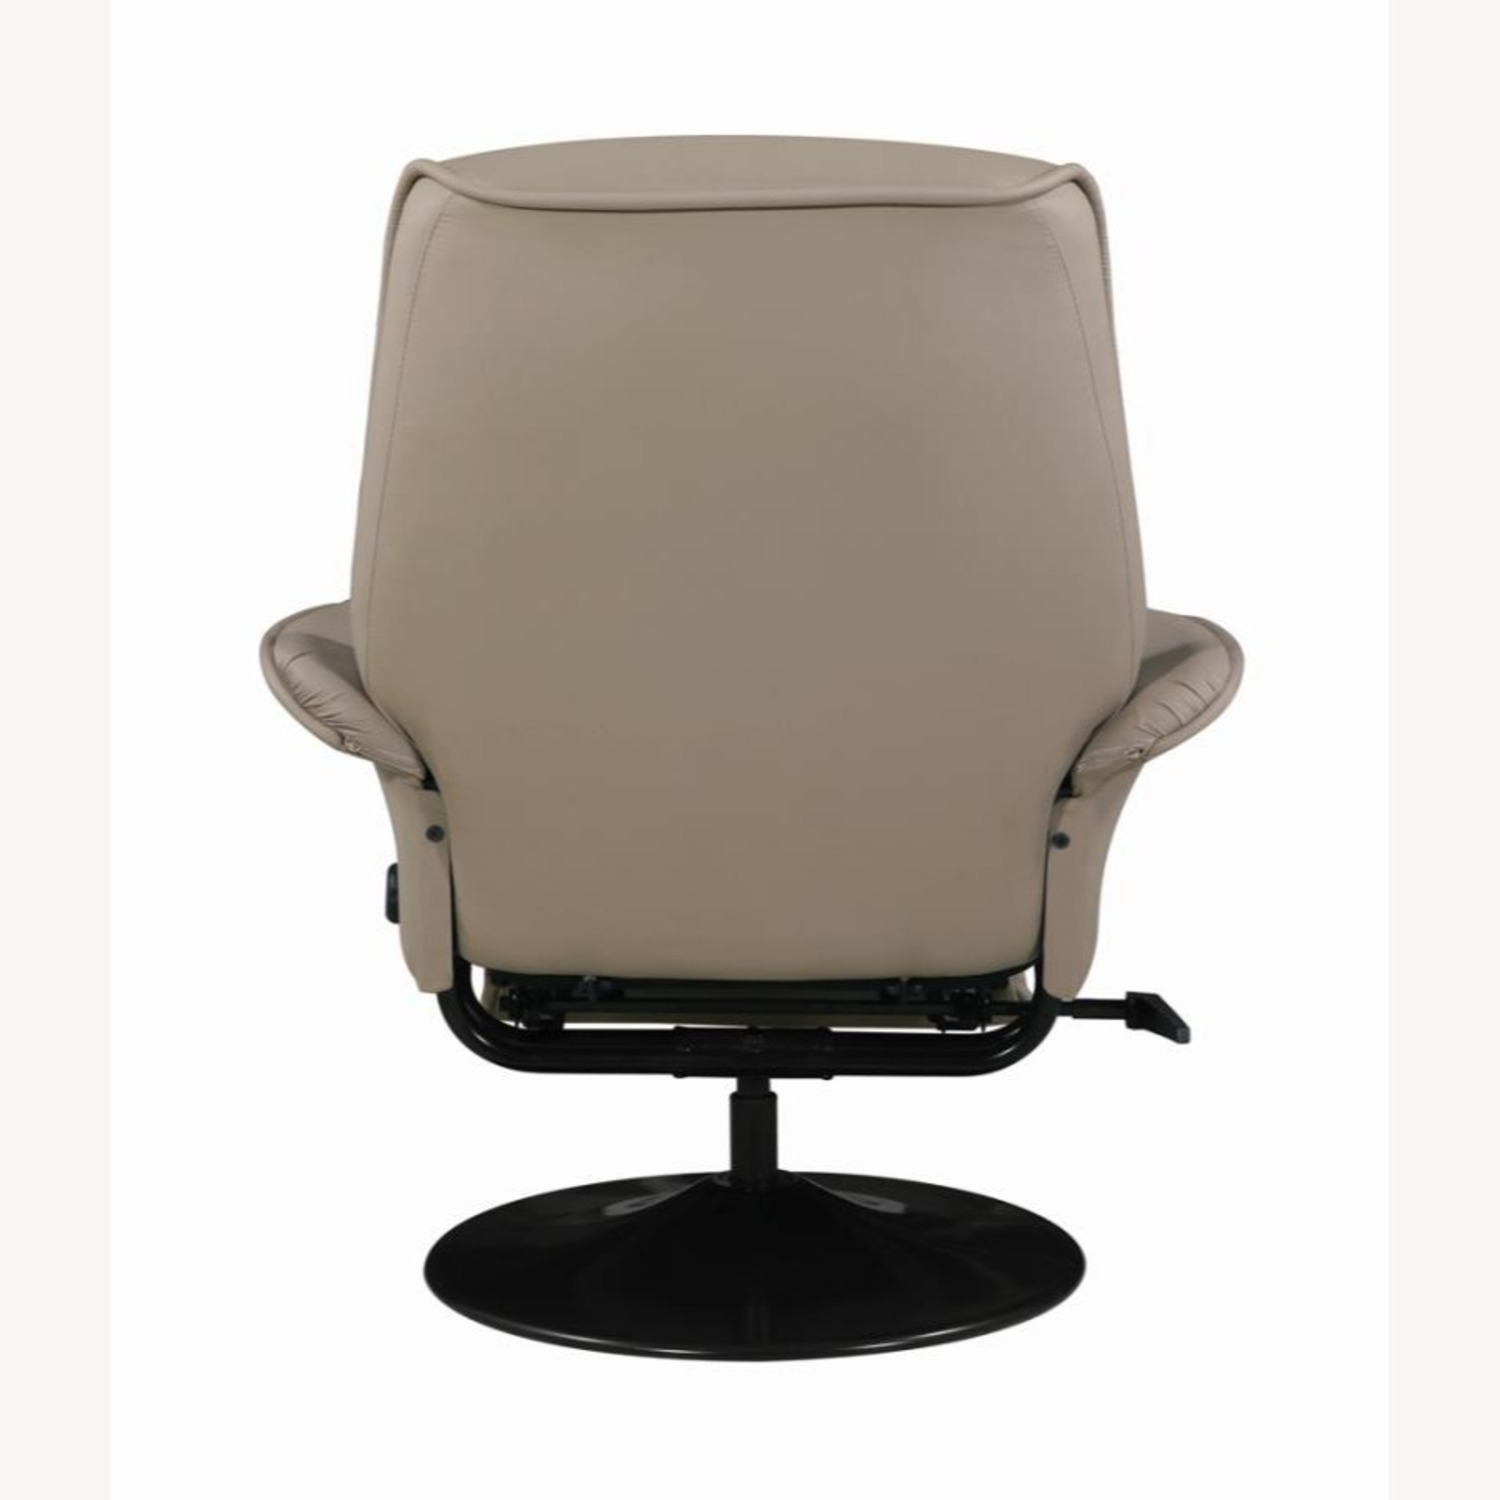 Swivel Recliner In Classic Beige Leatherette - image-4